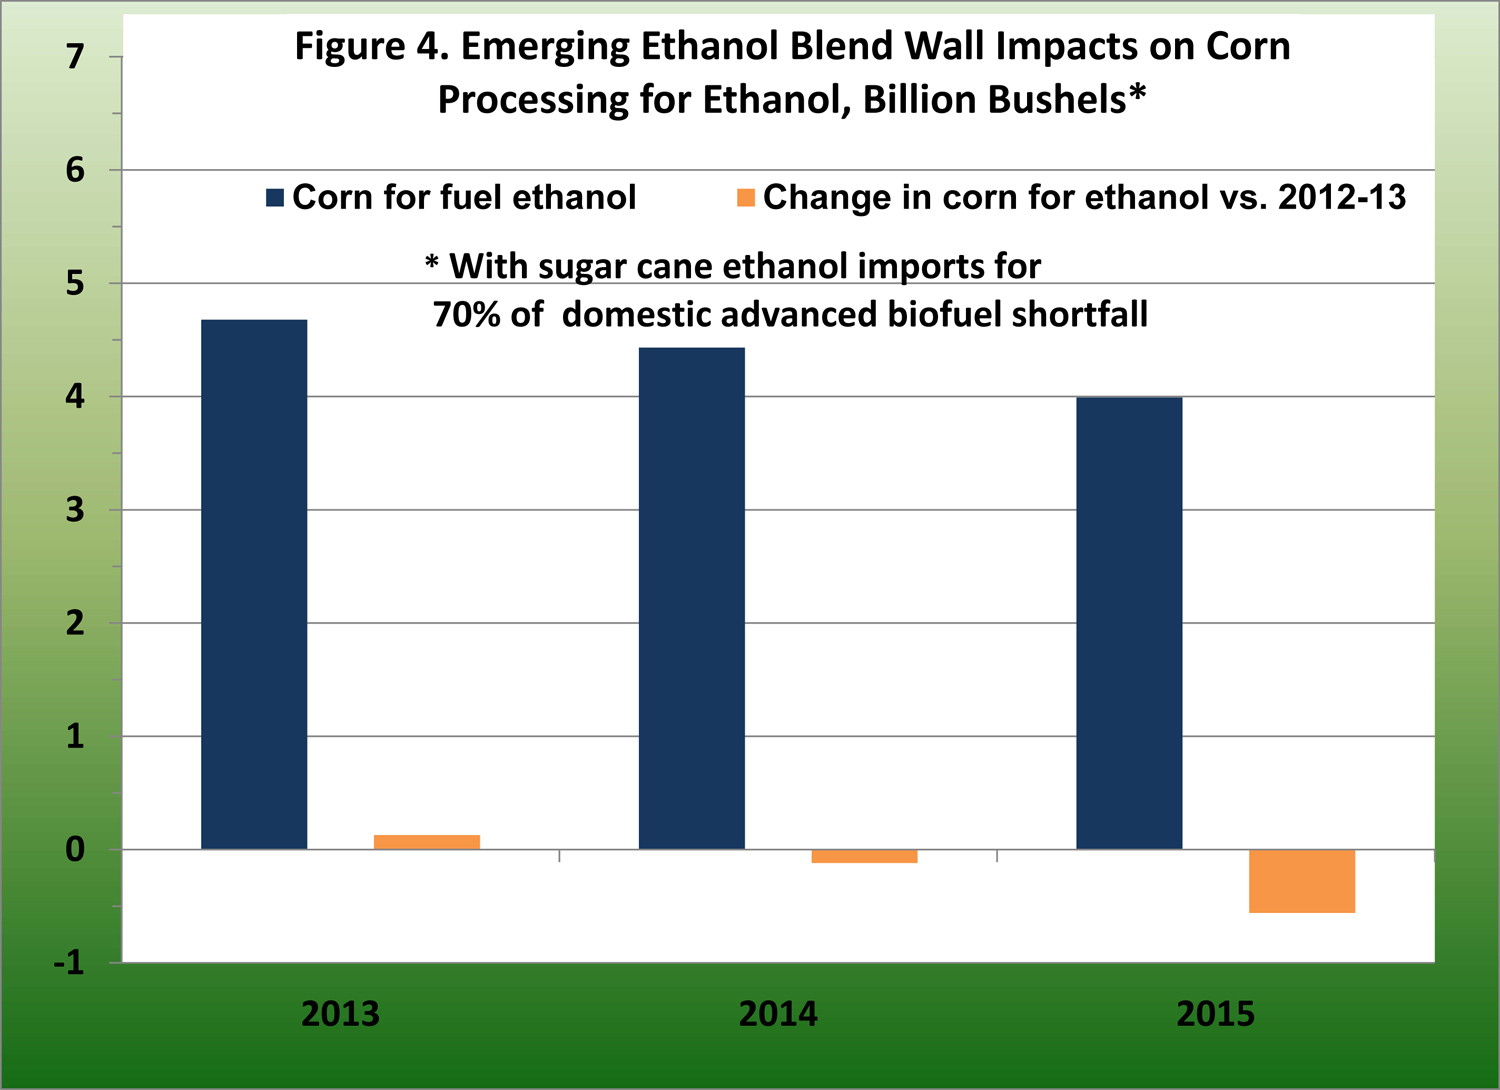 Emergin ethanol blend walll impacts